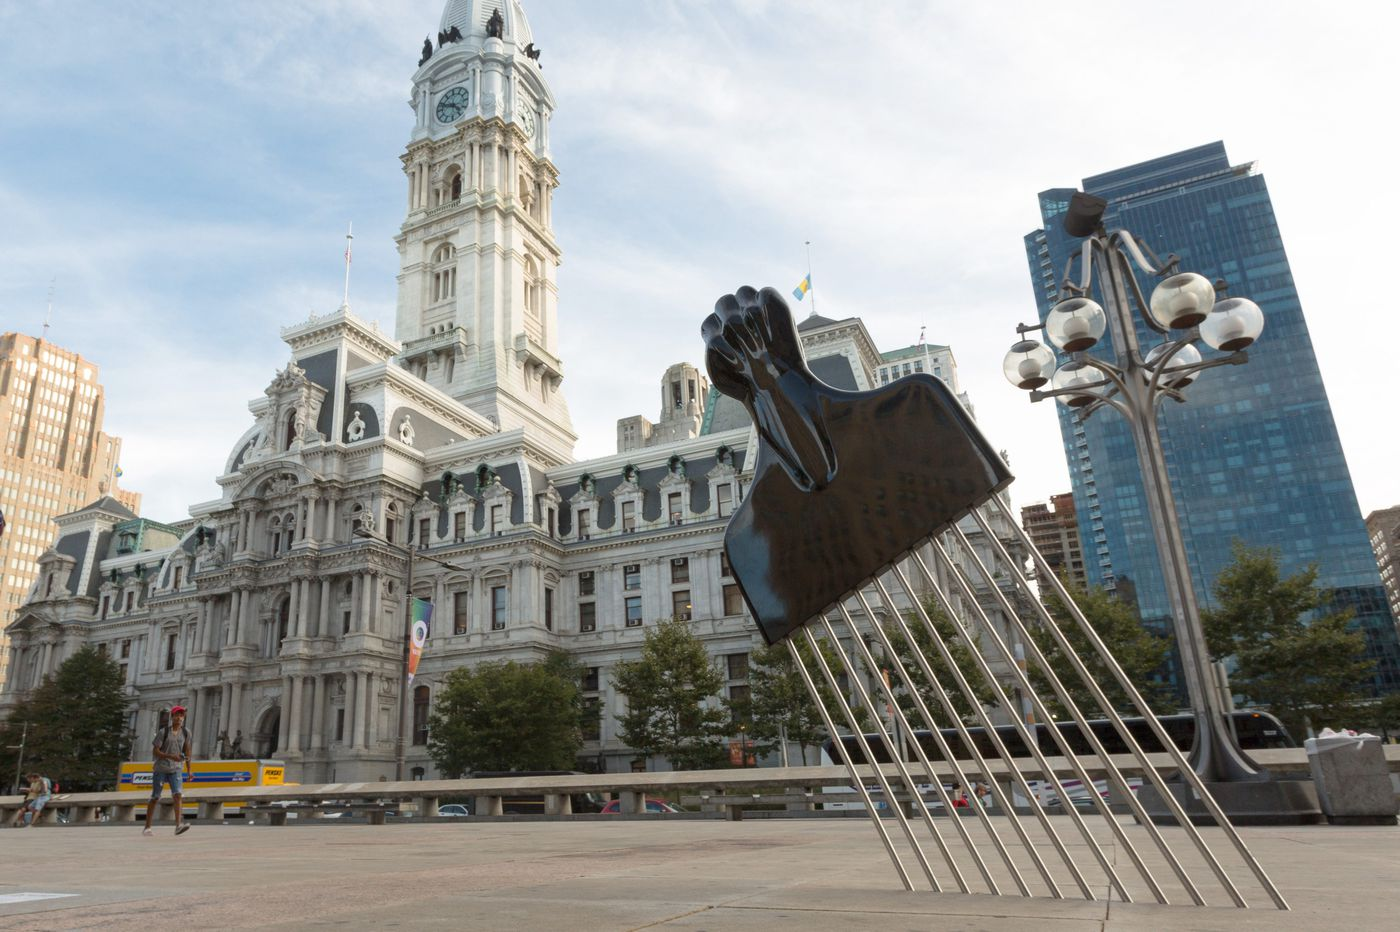 PAFA acquires monumental Afro pick first displayed near Rizzo statue